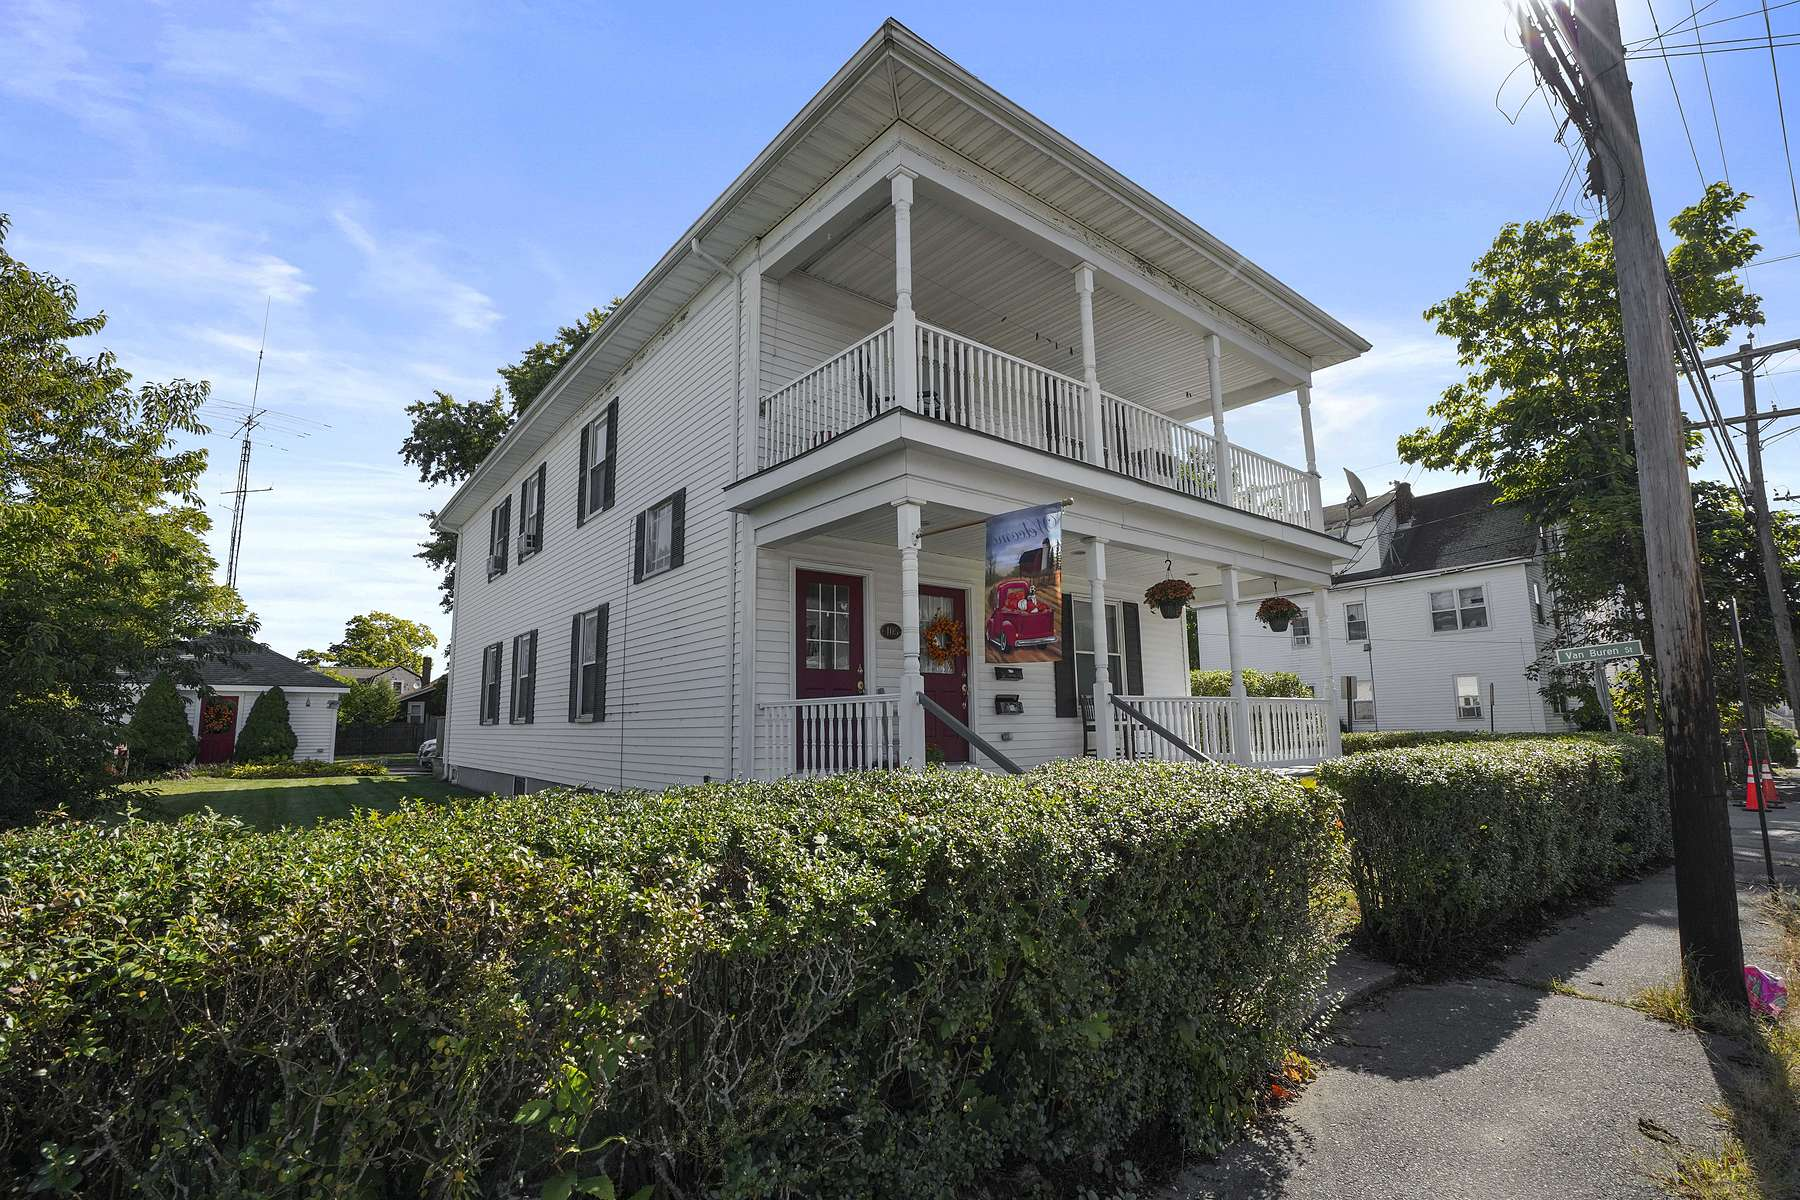 Multi-Family Homes for Sale at 405 Washington St, Taunton 405 Washington St Taunton, Massachusetts 02780 United States